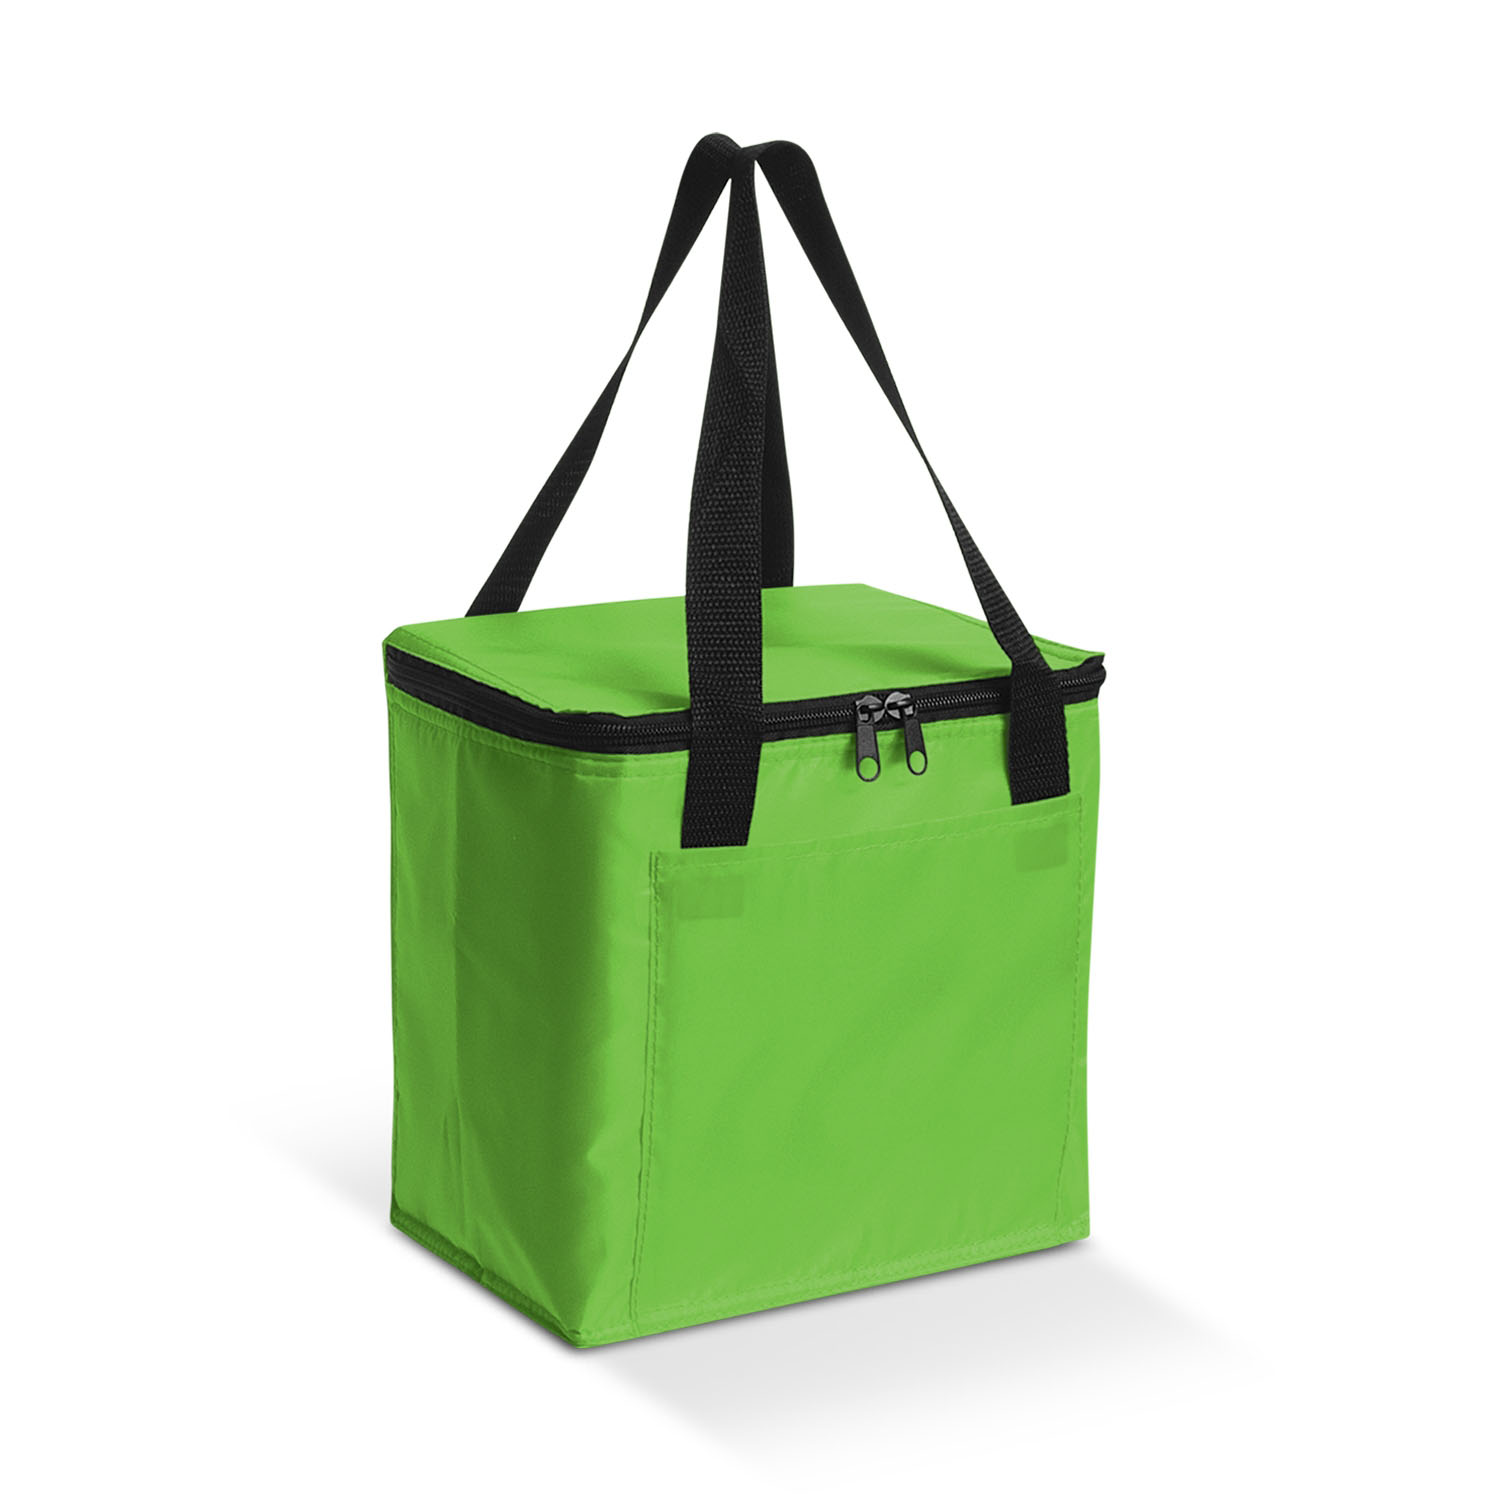 Get Green Siberia Cooler Bags Online in Perth